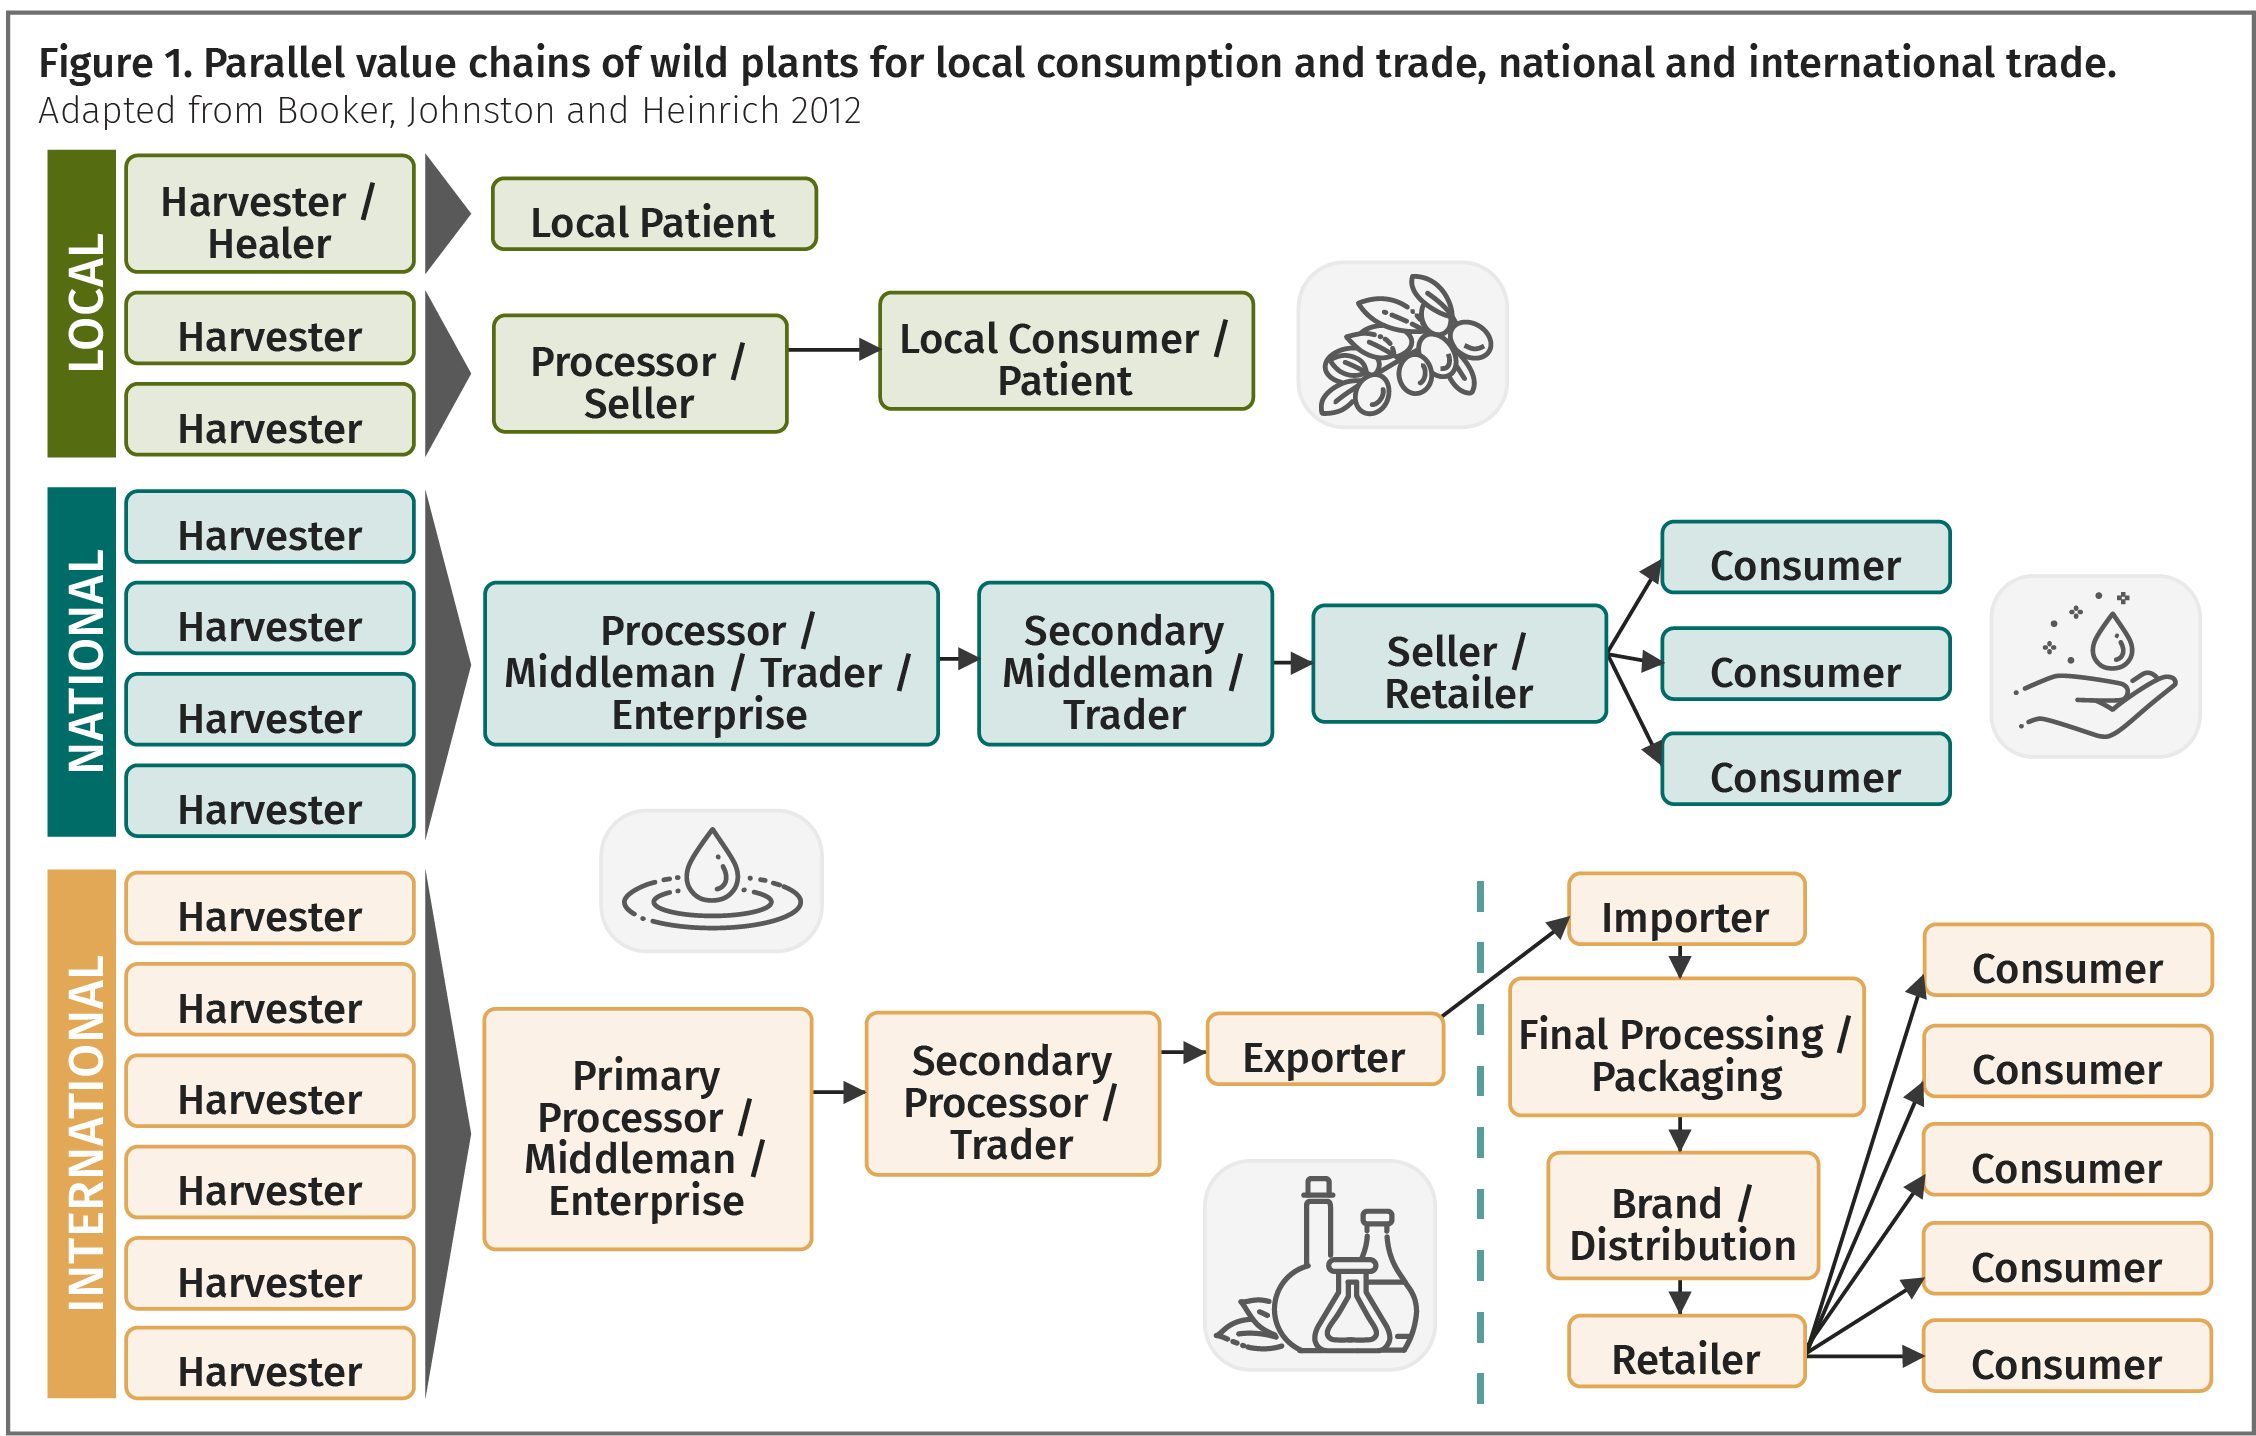 Figure 1. Parallel value chains of wild plants for local consumption and trade, national and international trade.